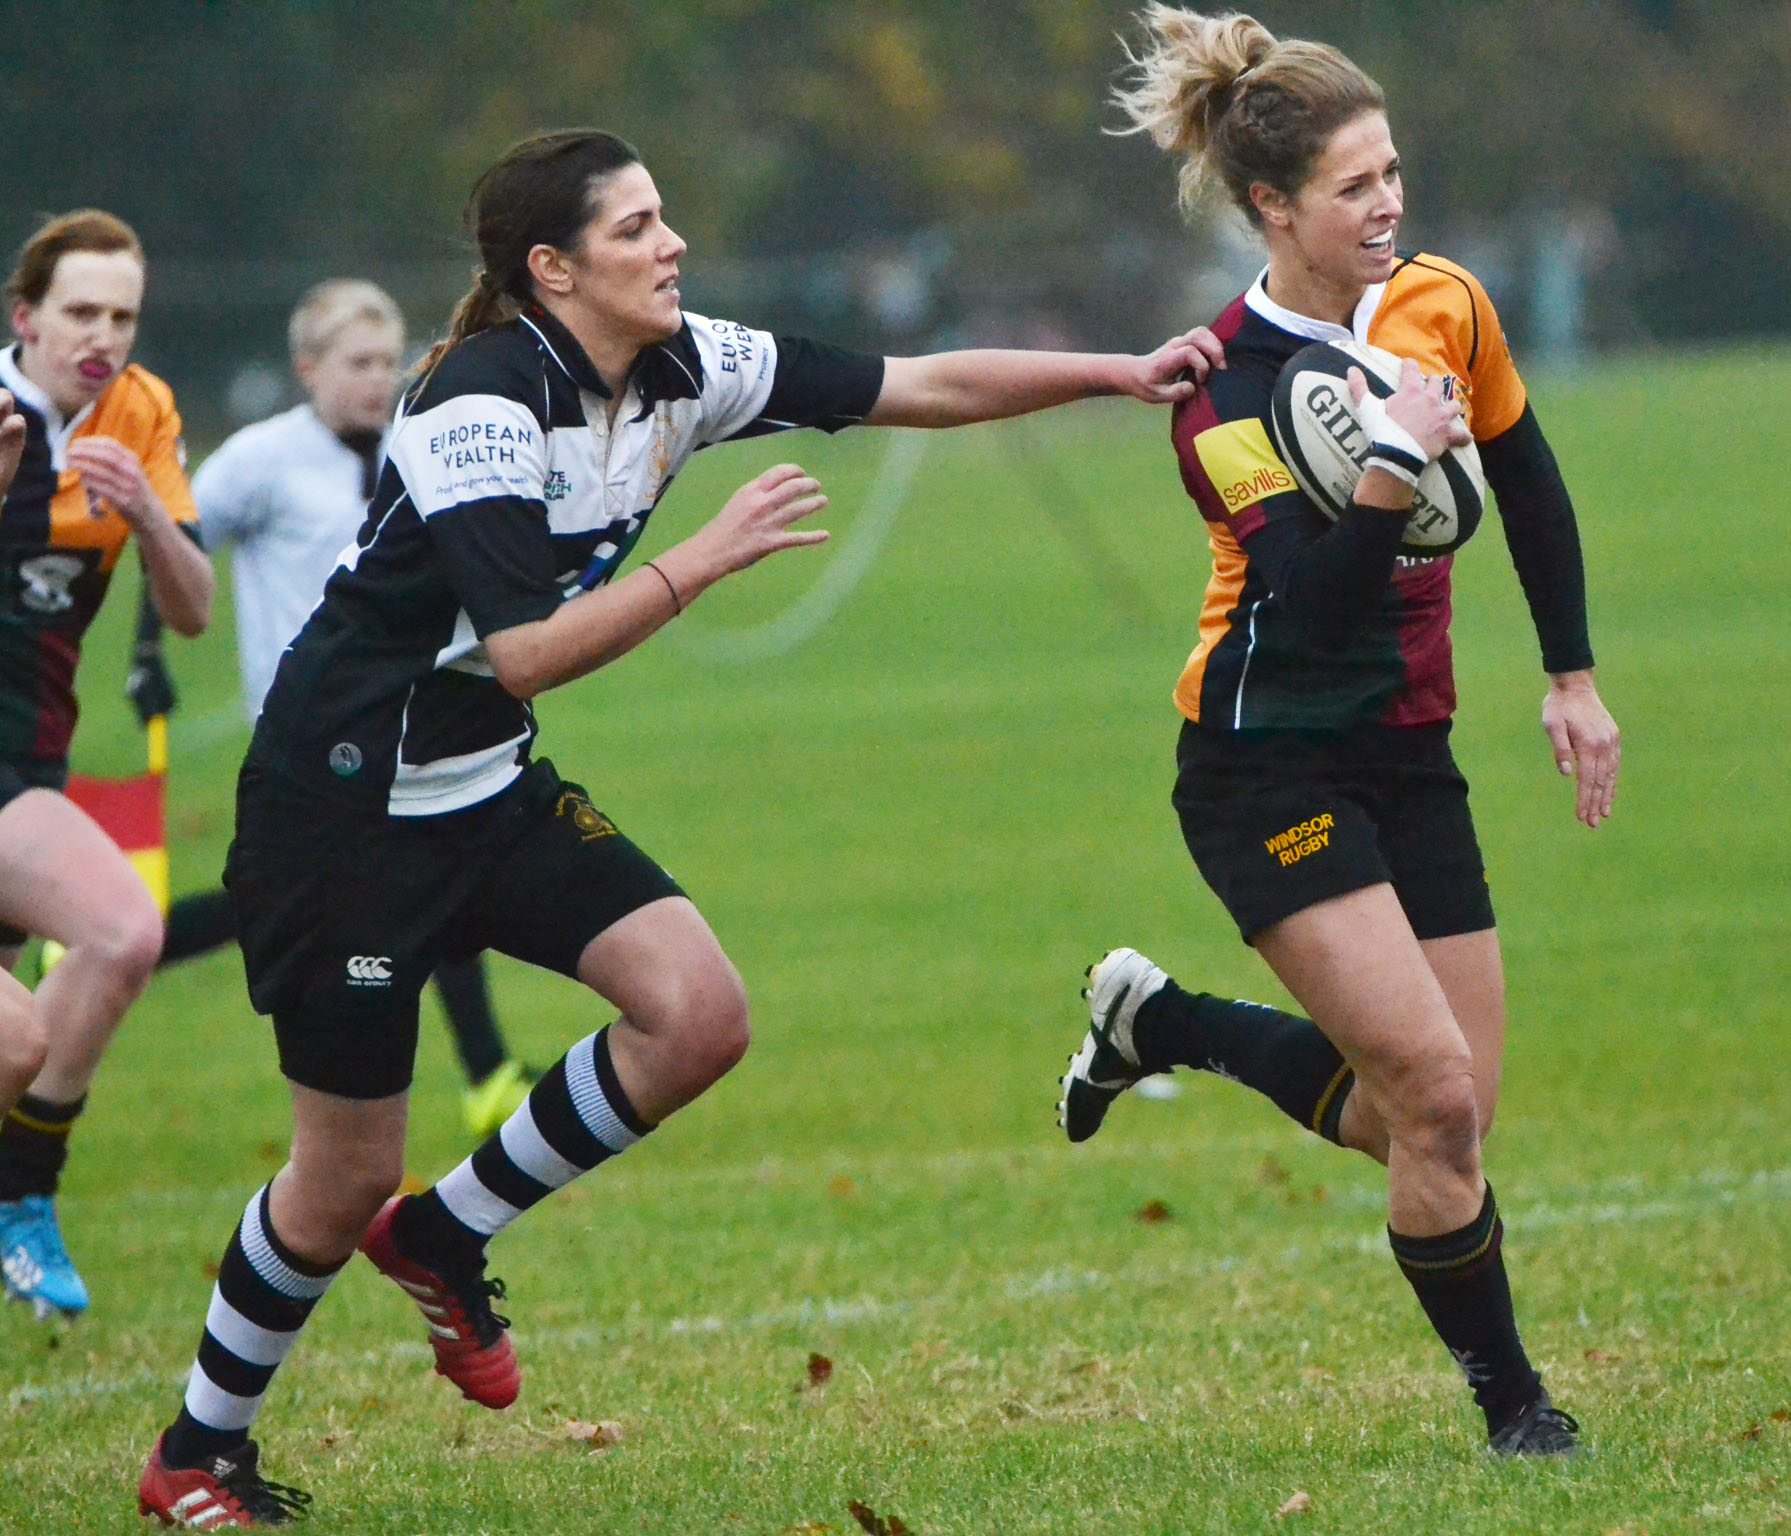 Rachel Humphries (ball in hand) scored a try but Windsor Dames were beaten 27-14 at Newbury on Sunday.